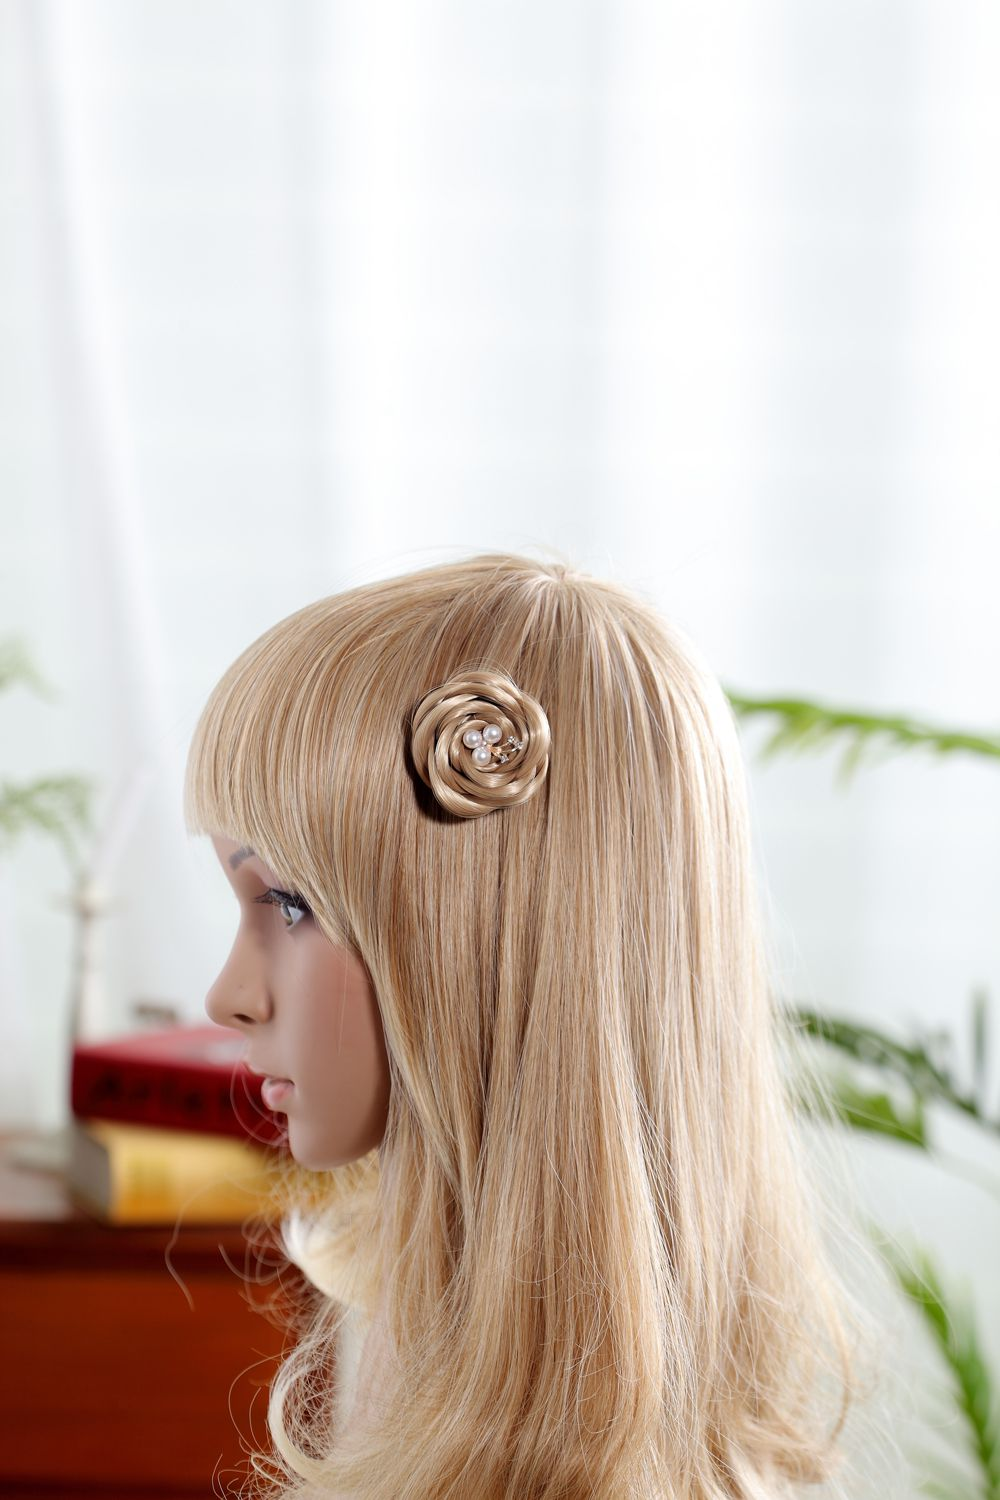 Pure hand-made, wigs, hair styling products, multi-function, can be a bud